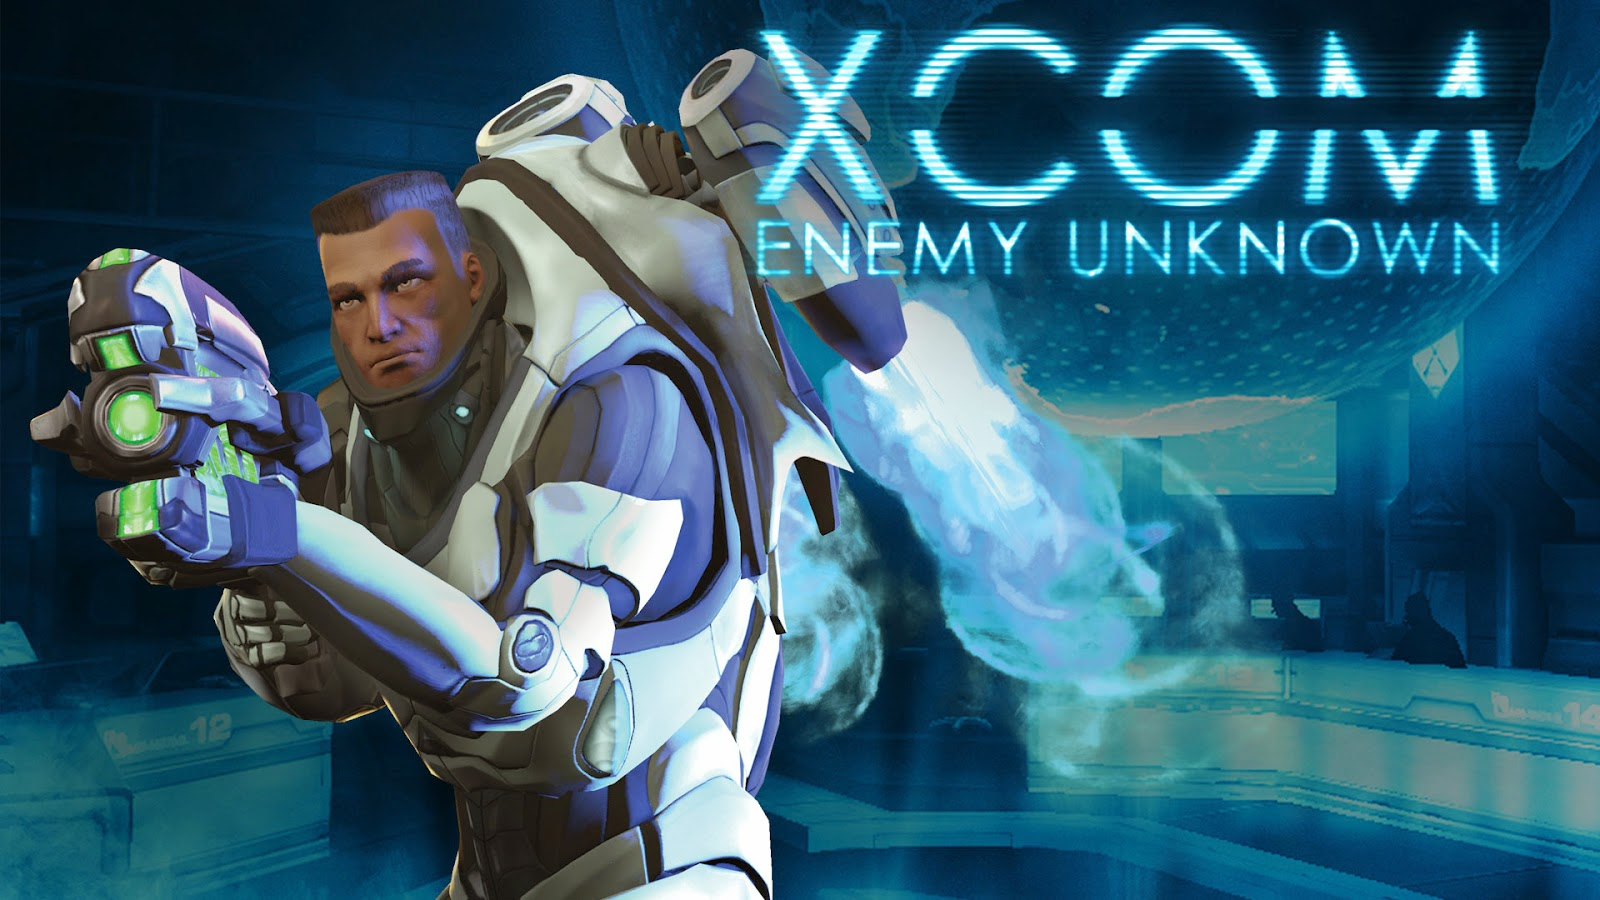 XCOM®: Enemy Unknown v1.1.0 APK